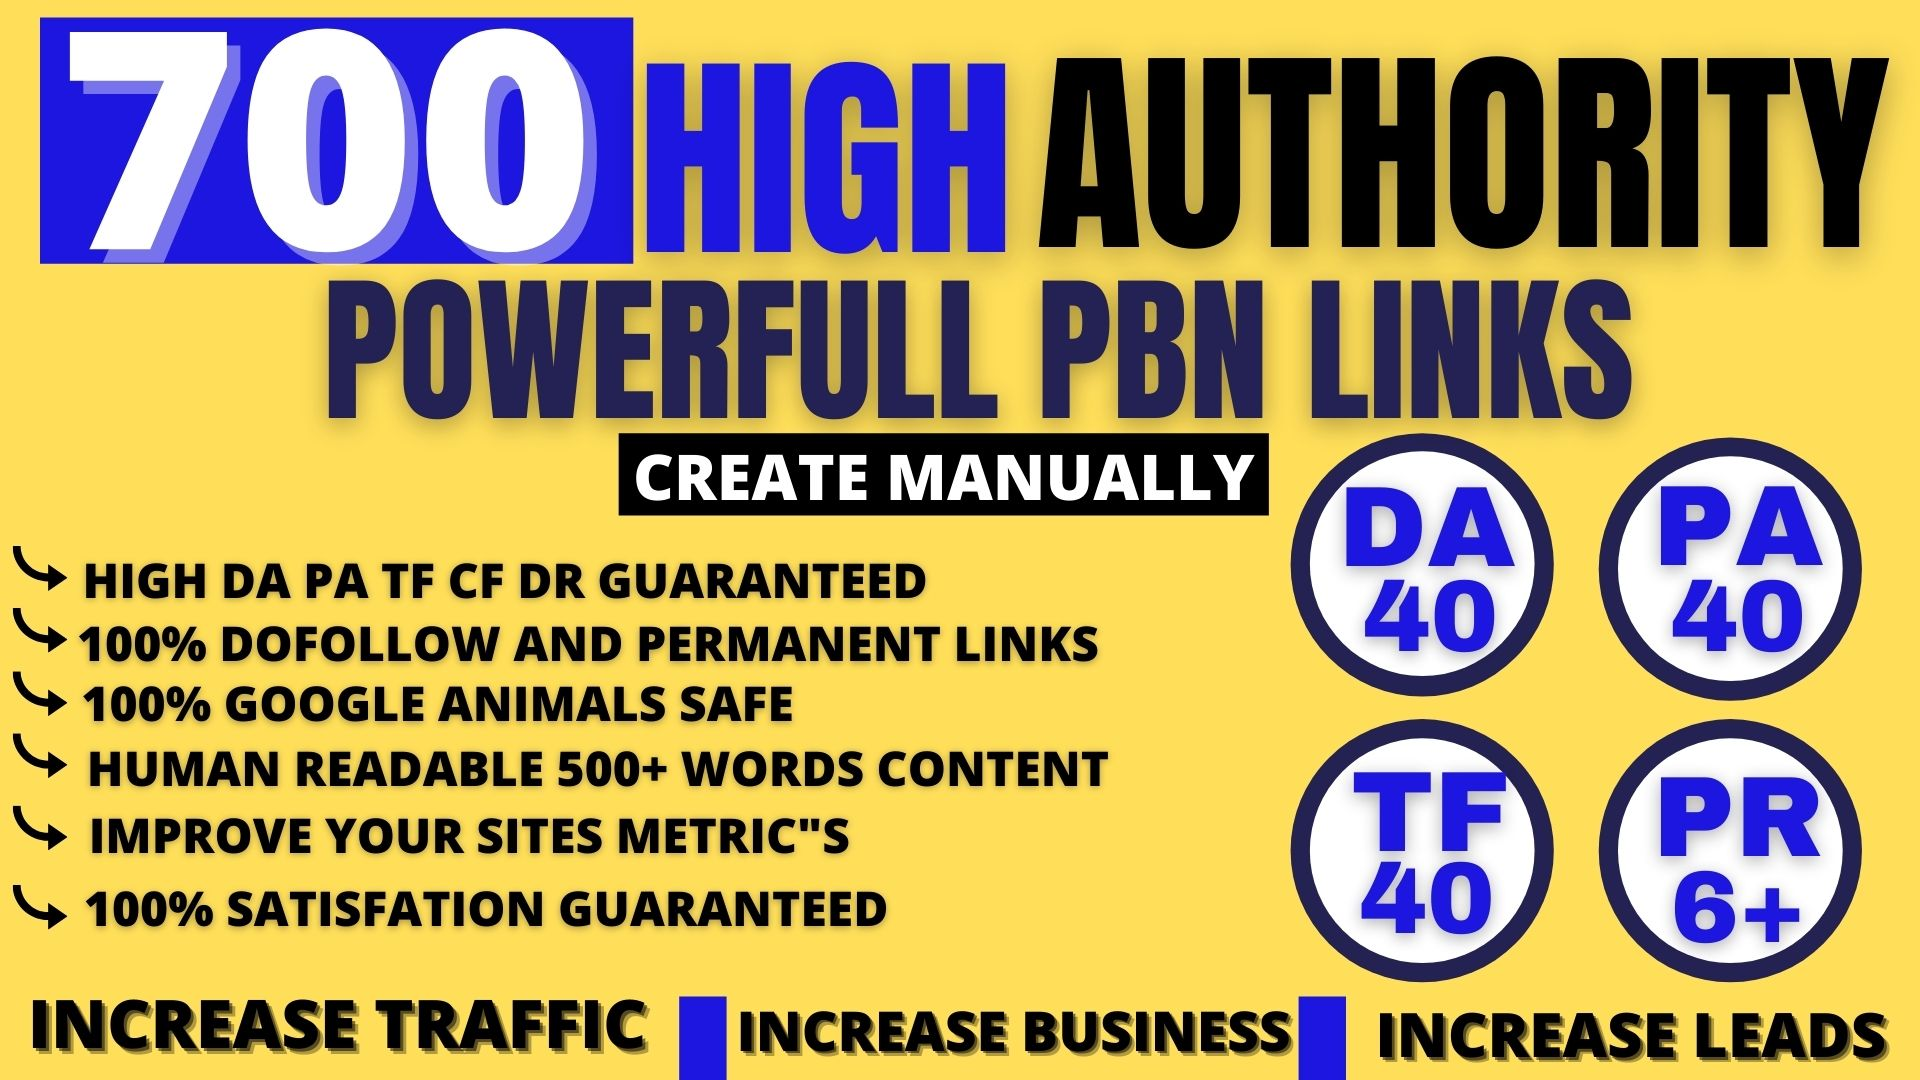 Build permanent 700 Pbn Backlink DA40+PA40+PR6+homepage web 2.0 with dofollow unique site